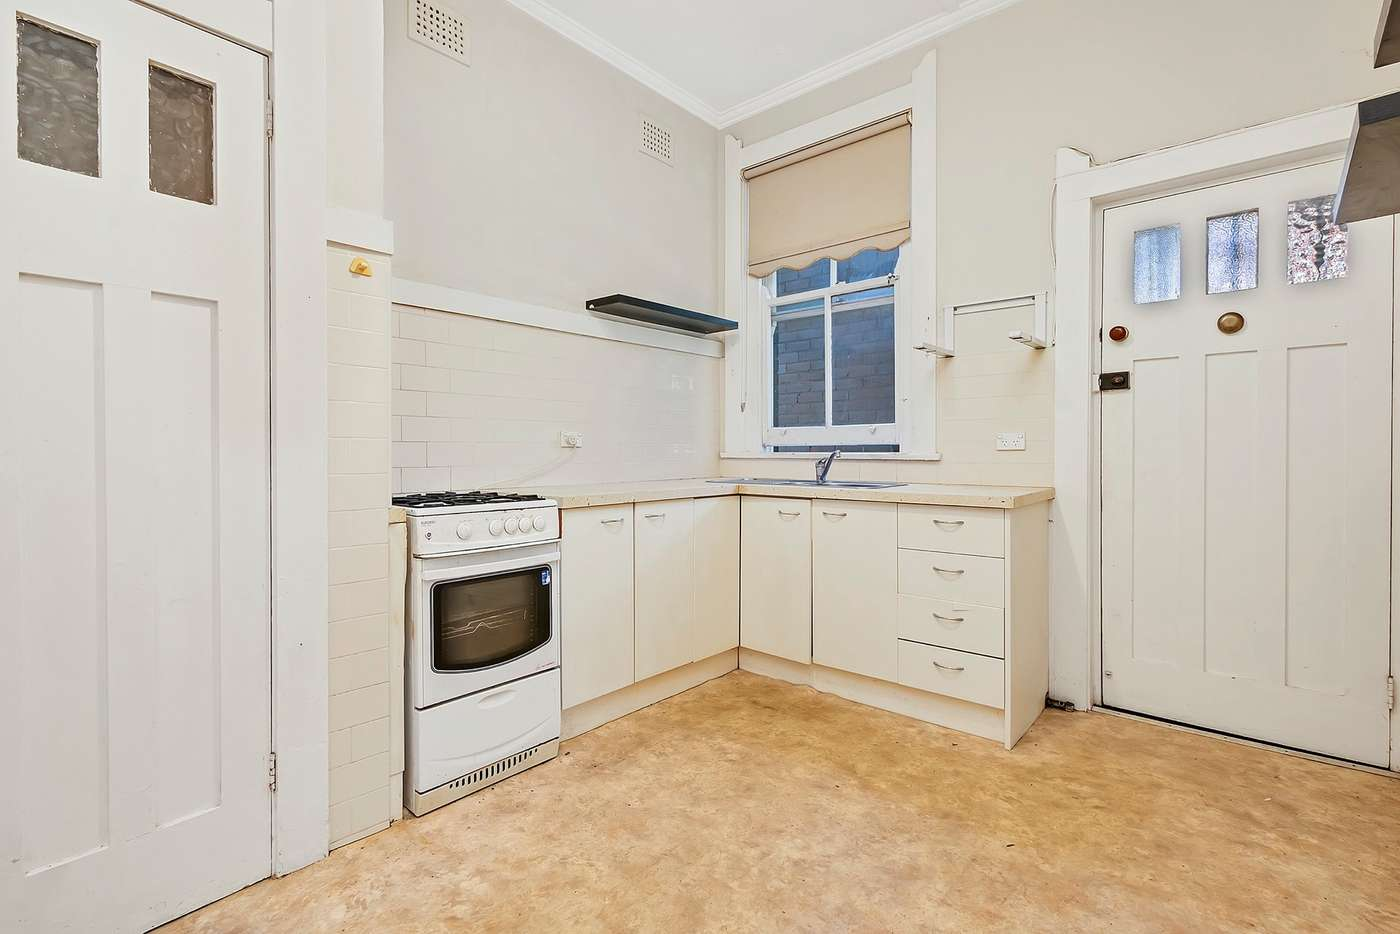 Sixth view of Homely apartment listing, 3/9B Carr Street, Coogee NSW 2034